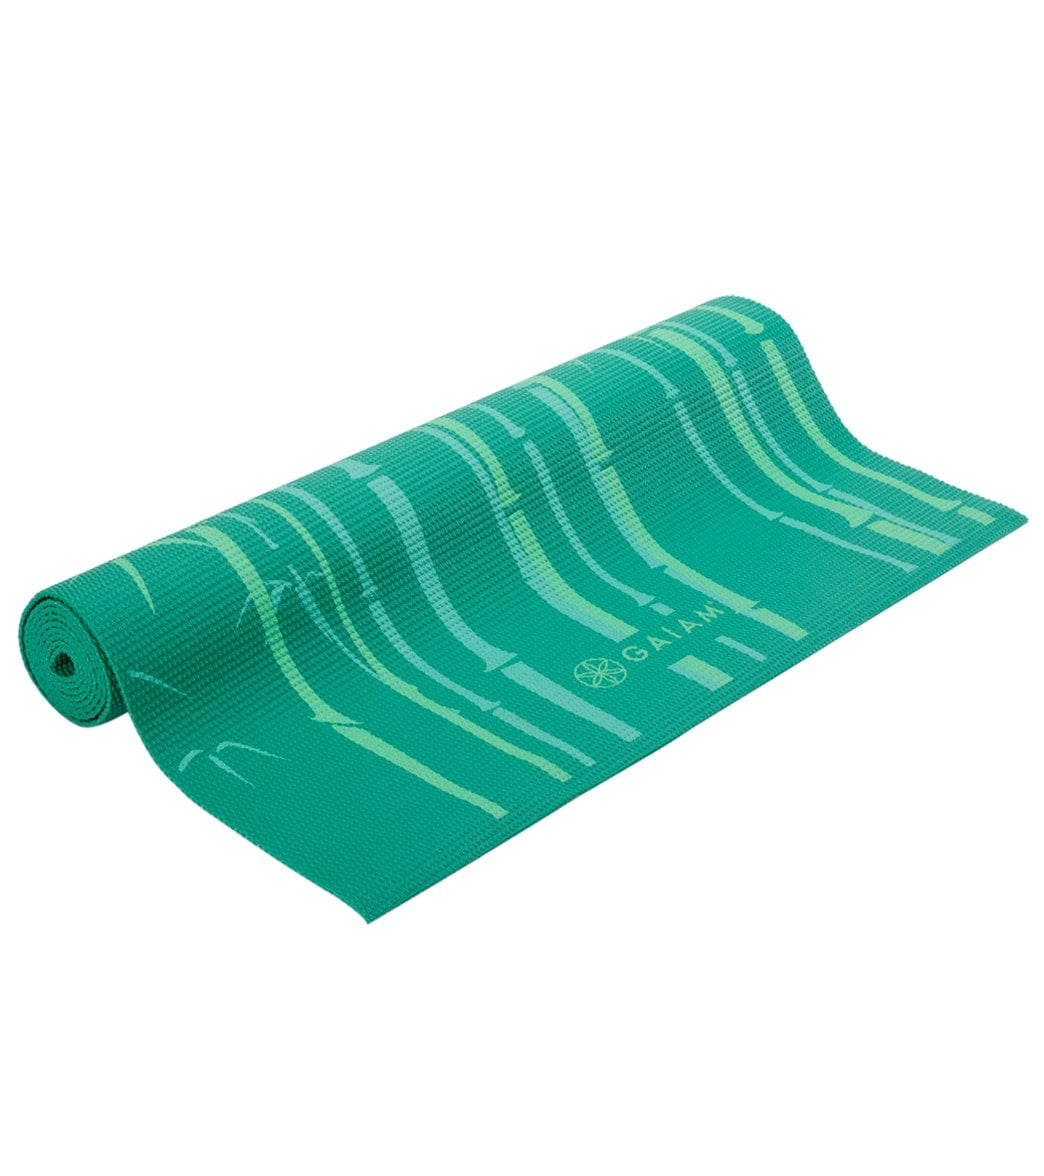 Gaiam Green Bamboo Classic Yoga Mat 68 Quot 3mm At Swimoutlet Com